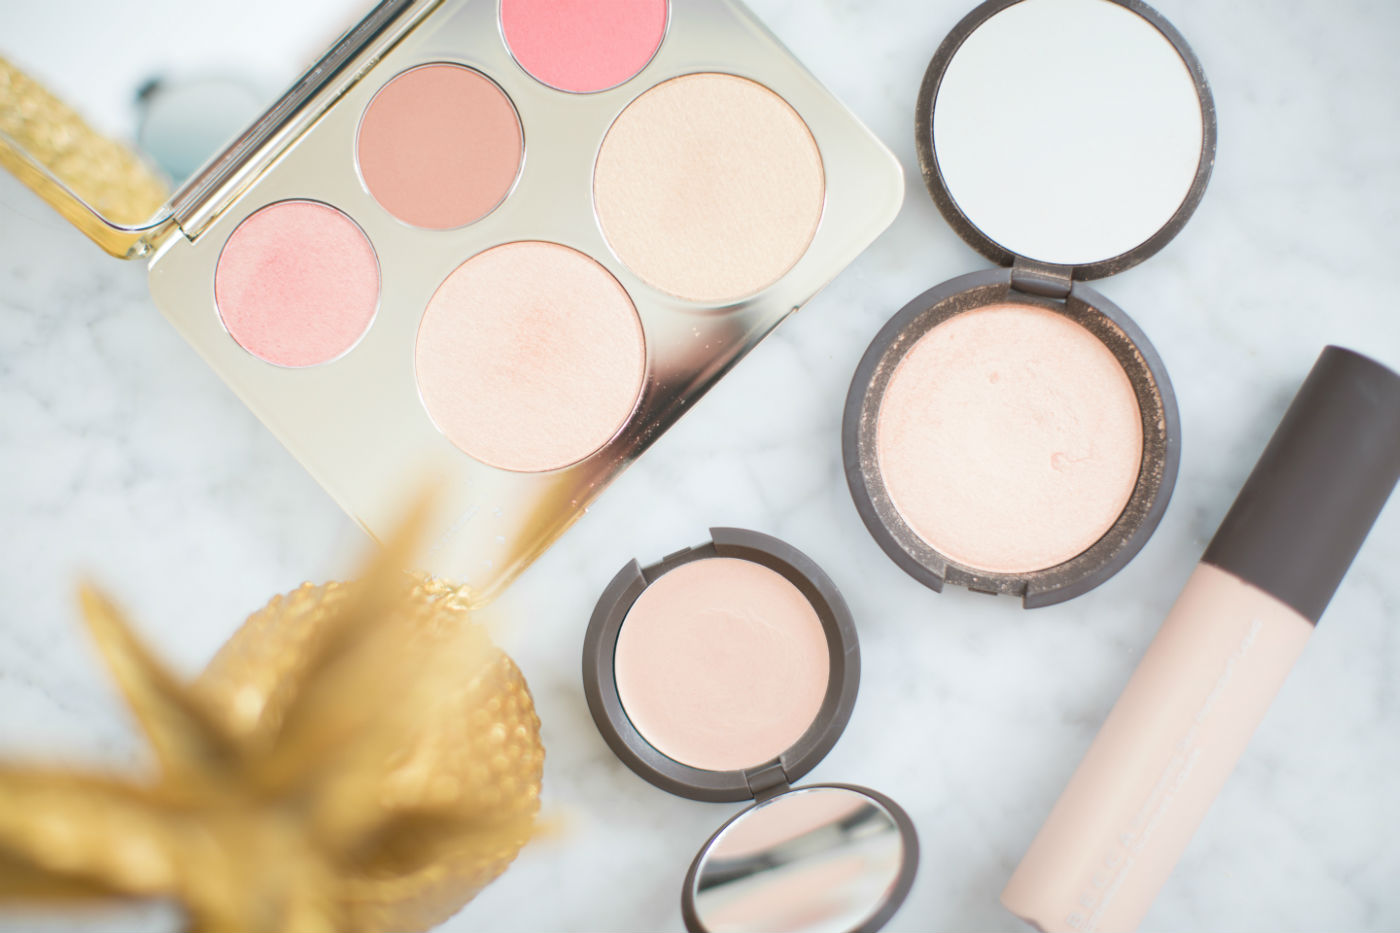 lily-pebbles-champagne-pop-becca-collection-1